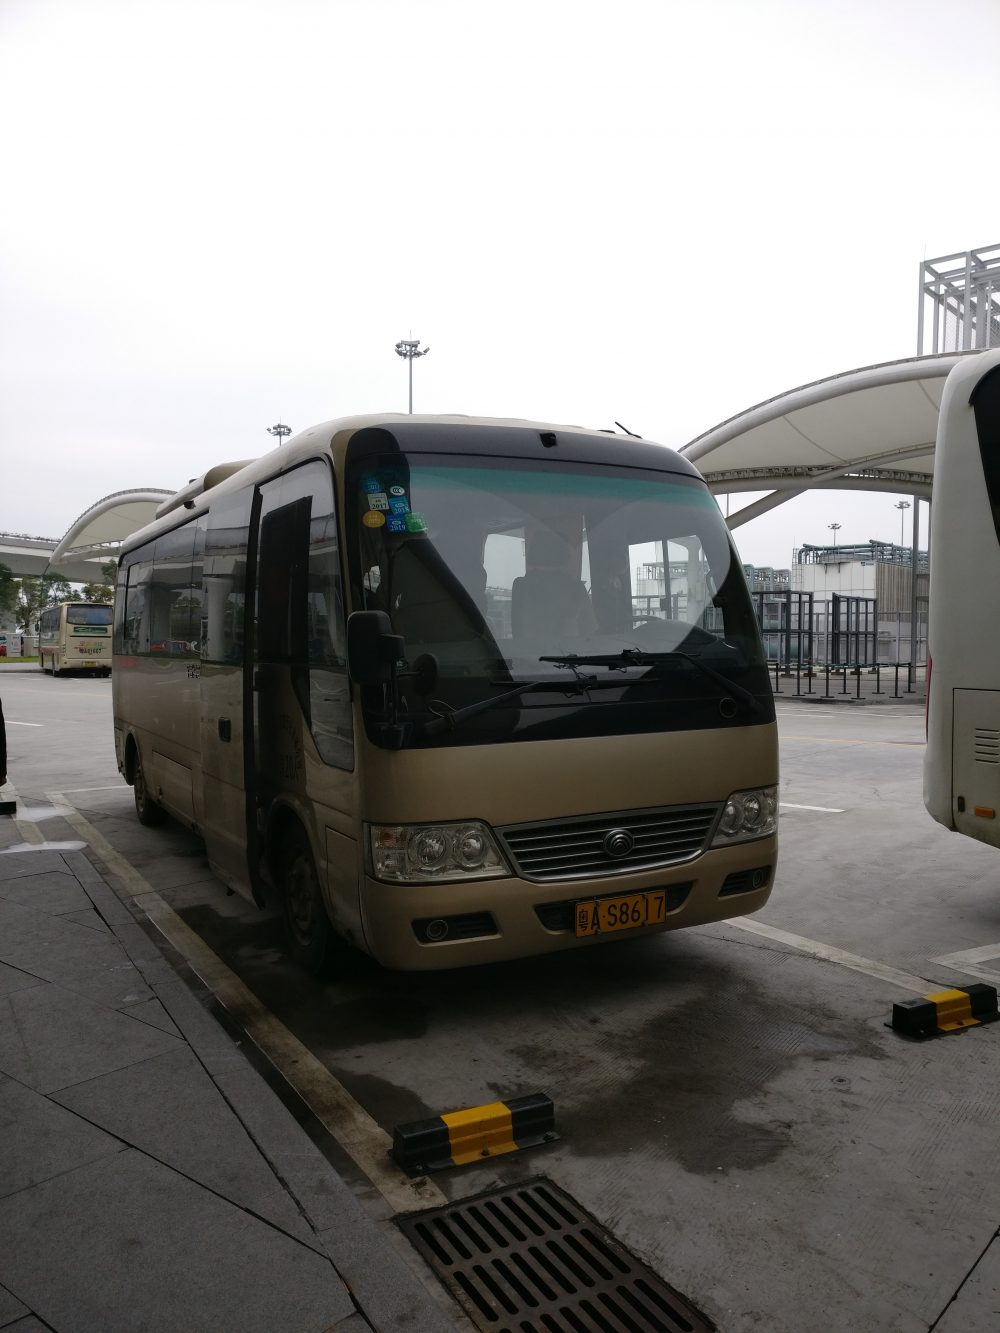 China Southern Airlines Transit And Layover Bus